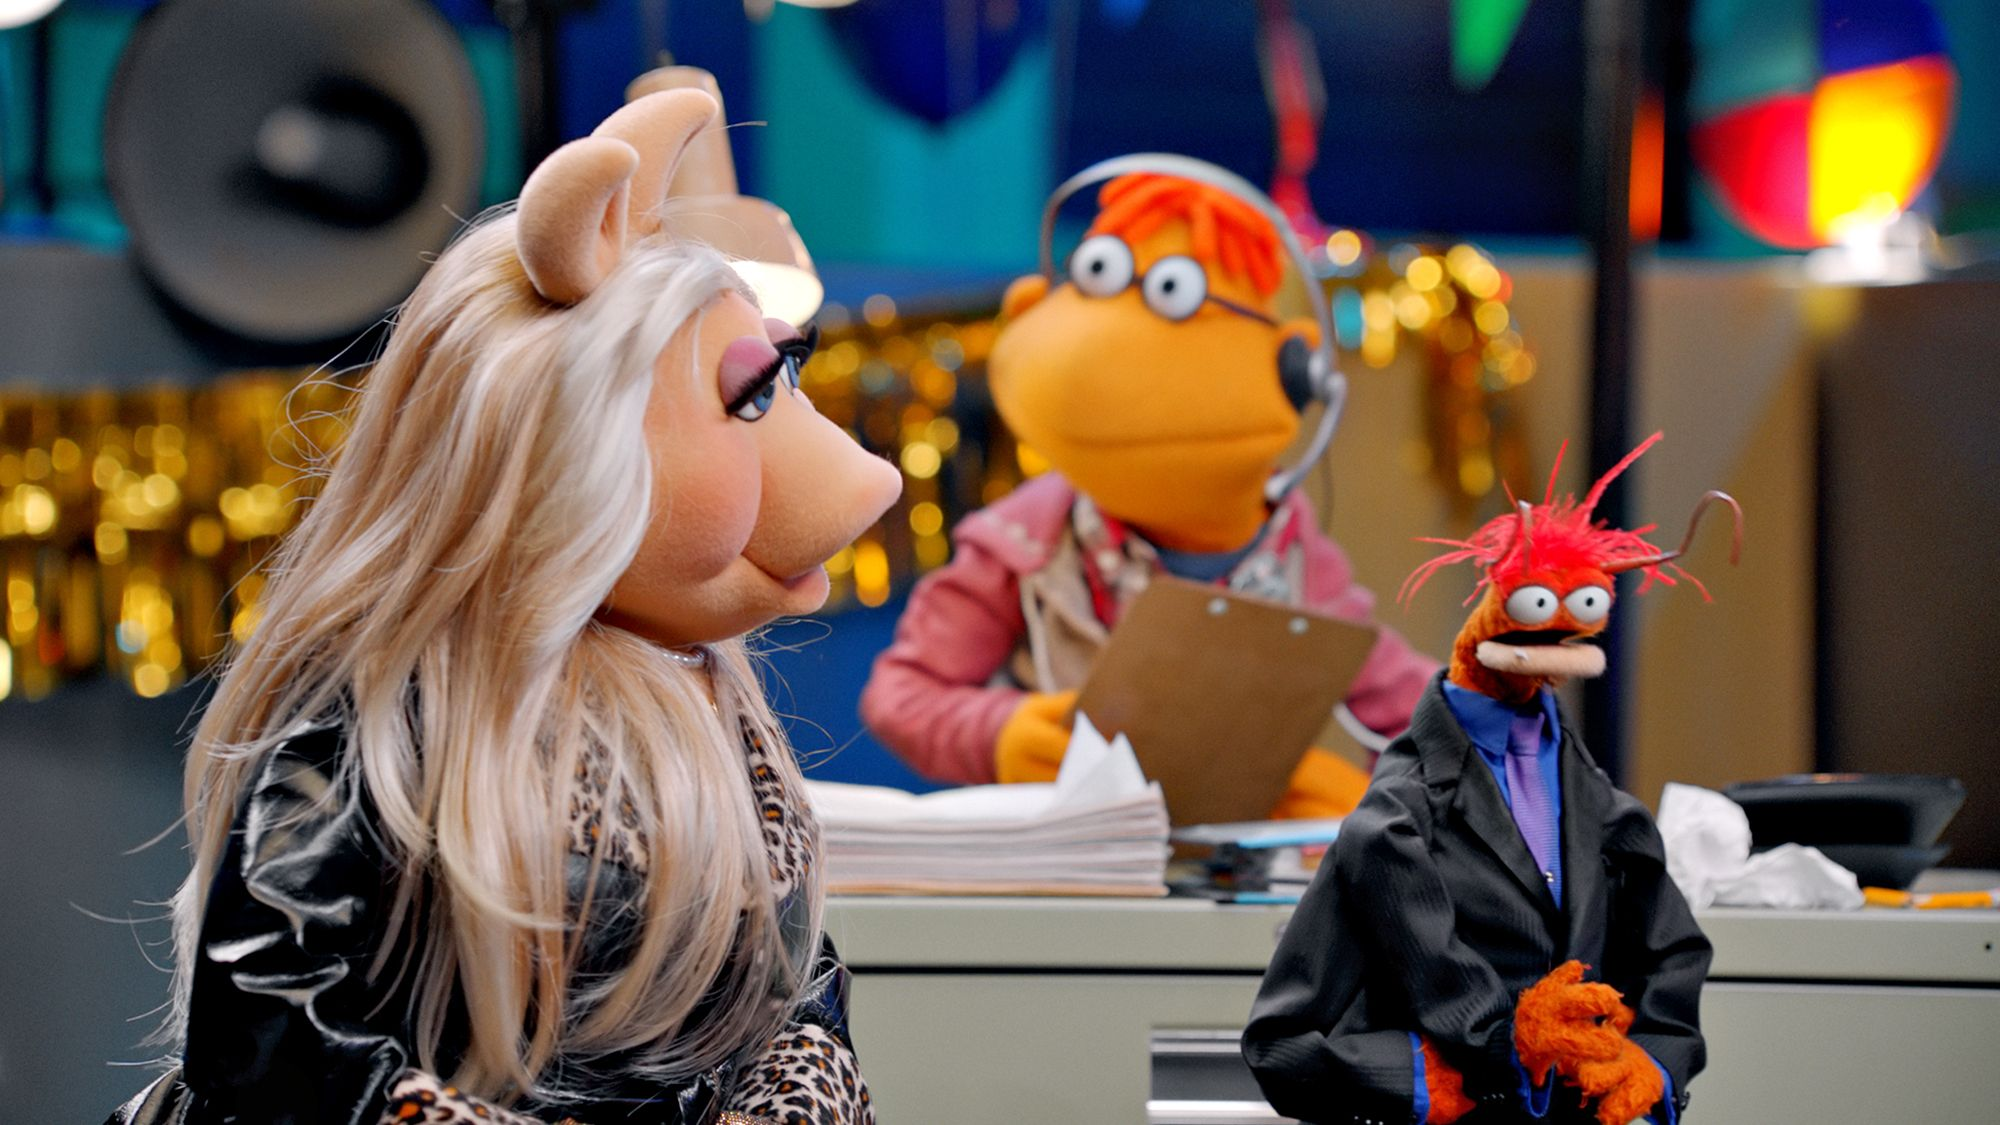 gopher The Muppets: The Adult Origins Of 'Mahna Mahna' And More Things You Didn't Know